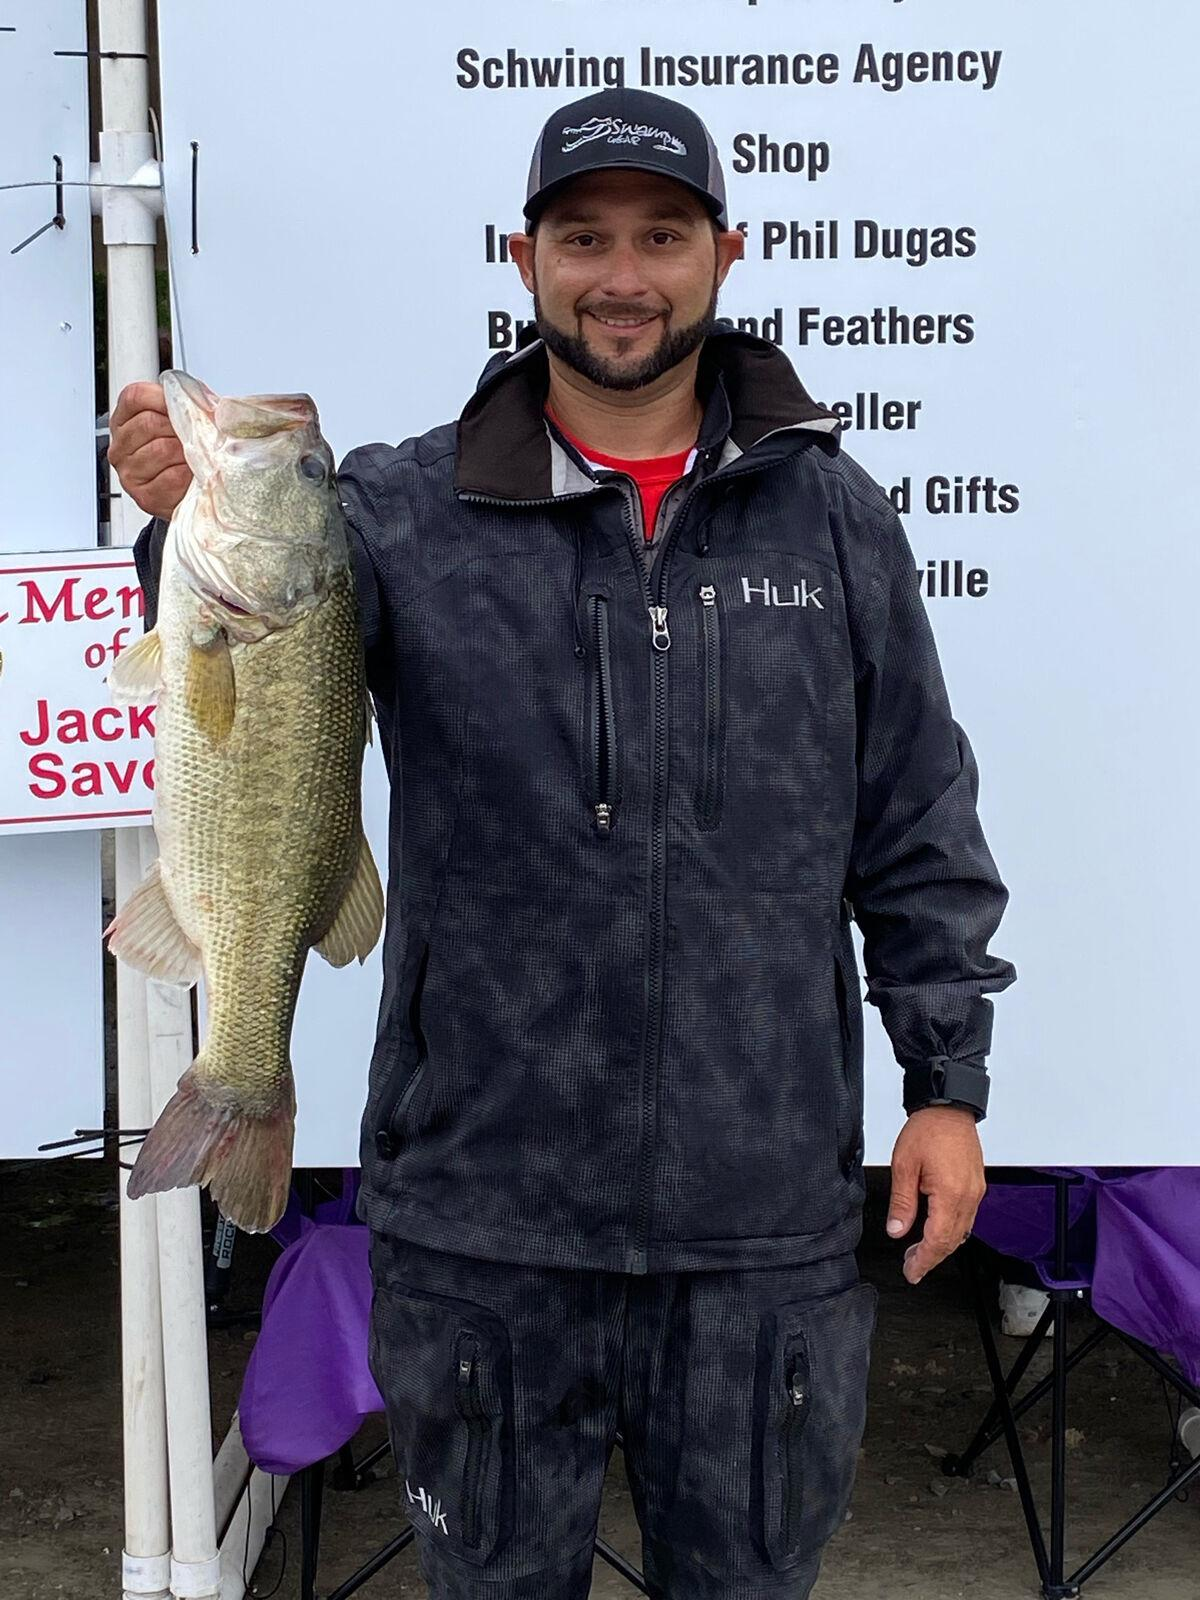 Theriot, Quintana have 'Oh my goodness' day of bass fishing to dominate BBC field